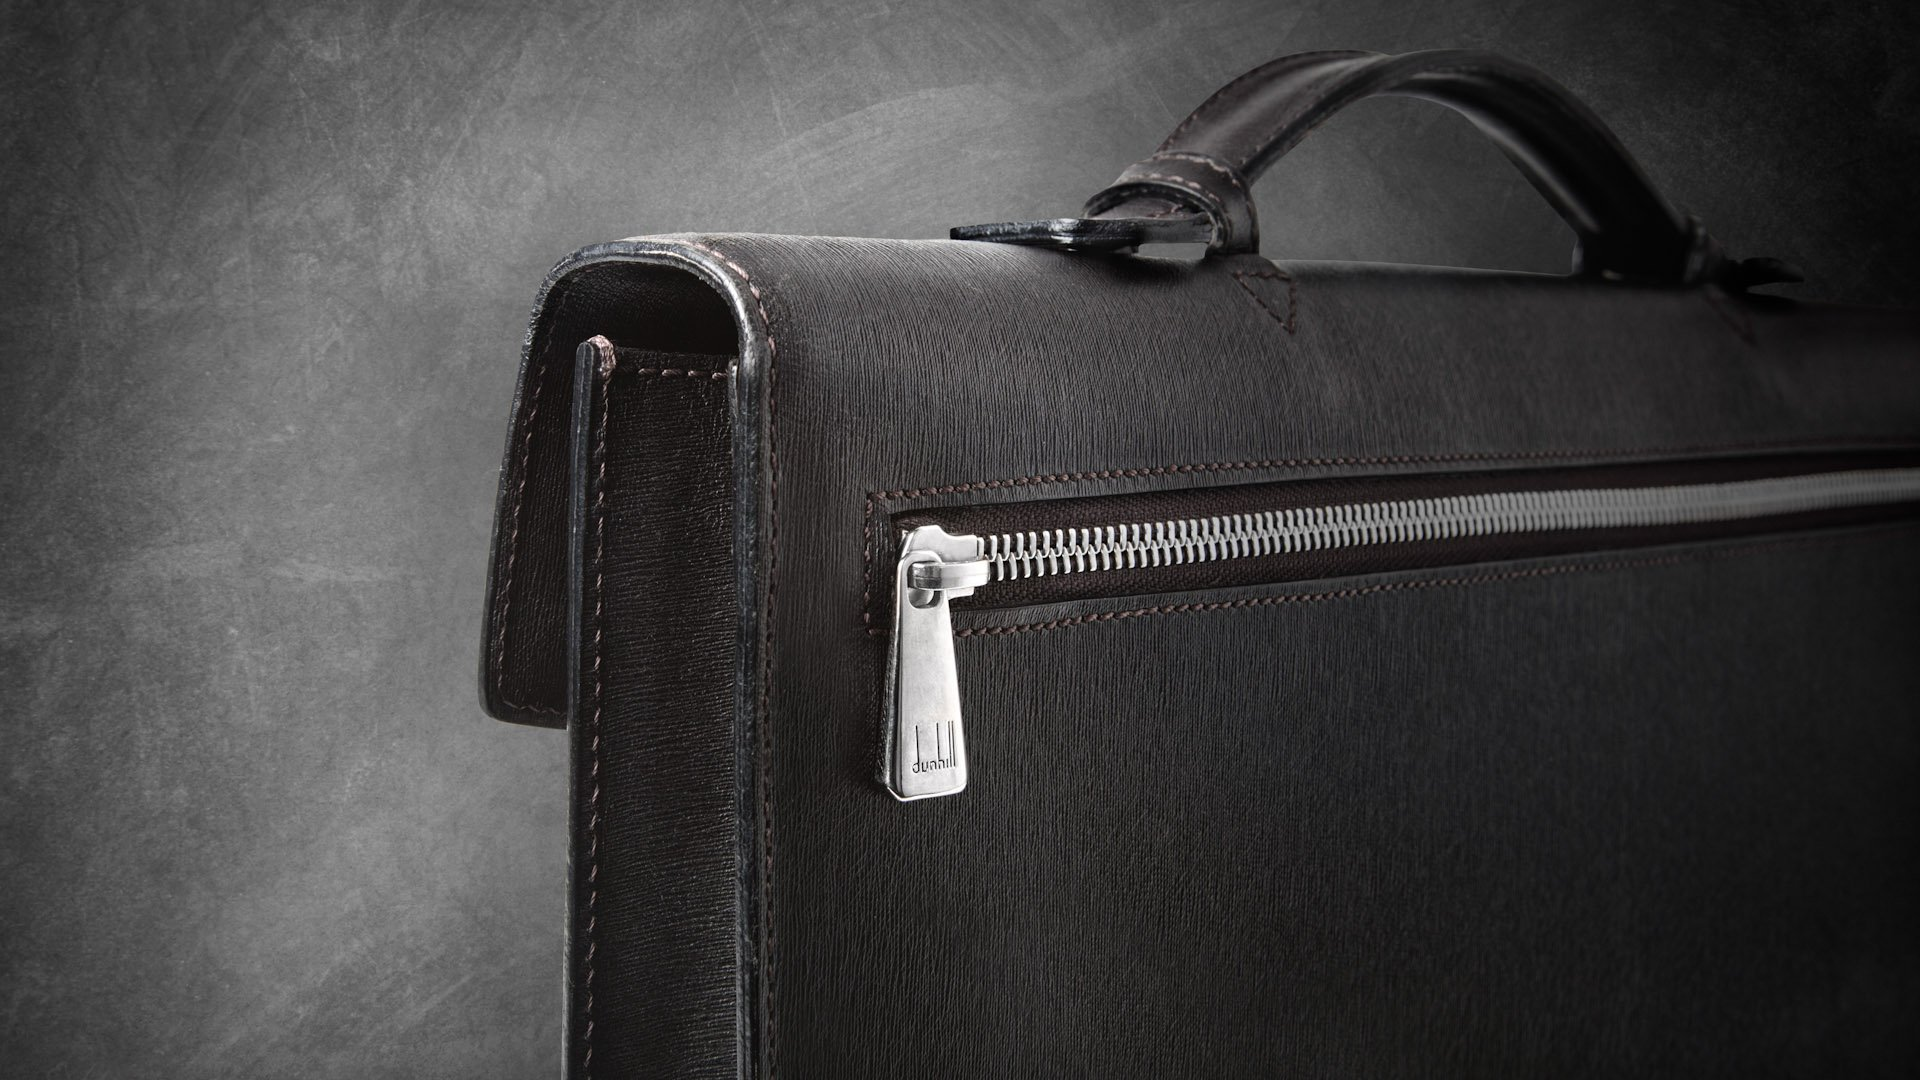 Leather goods and bags product photography